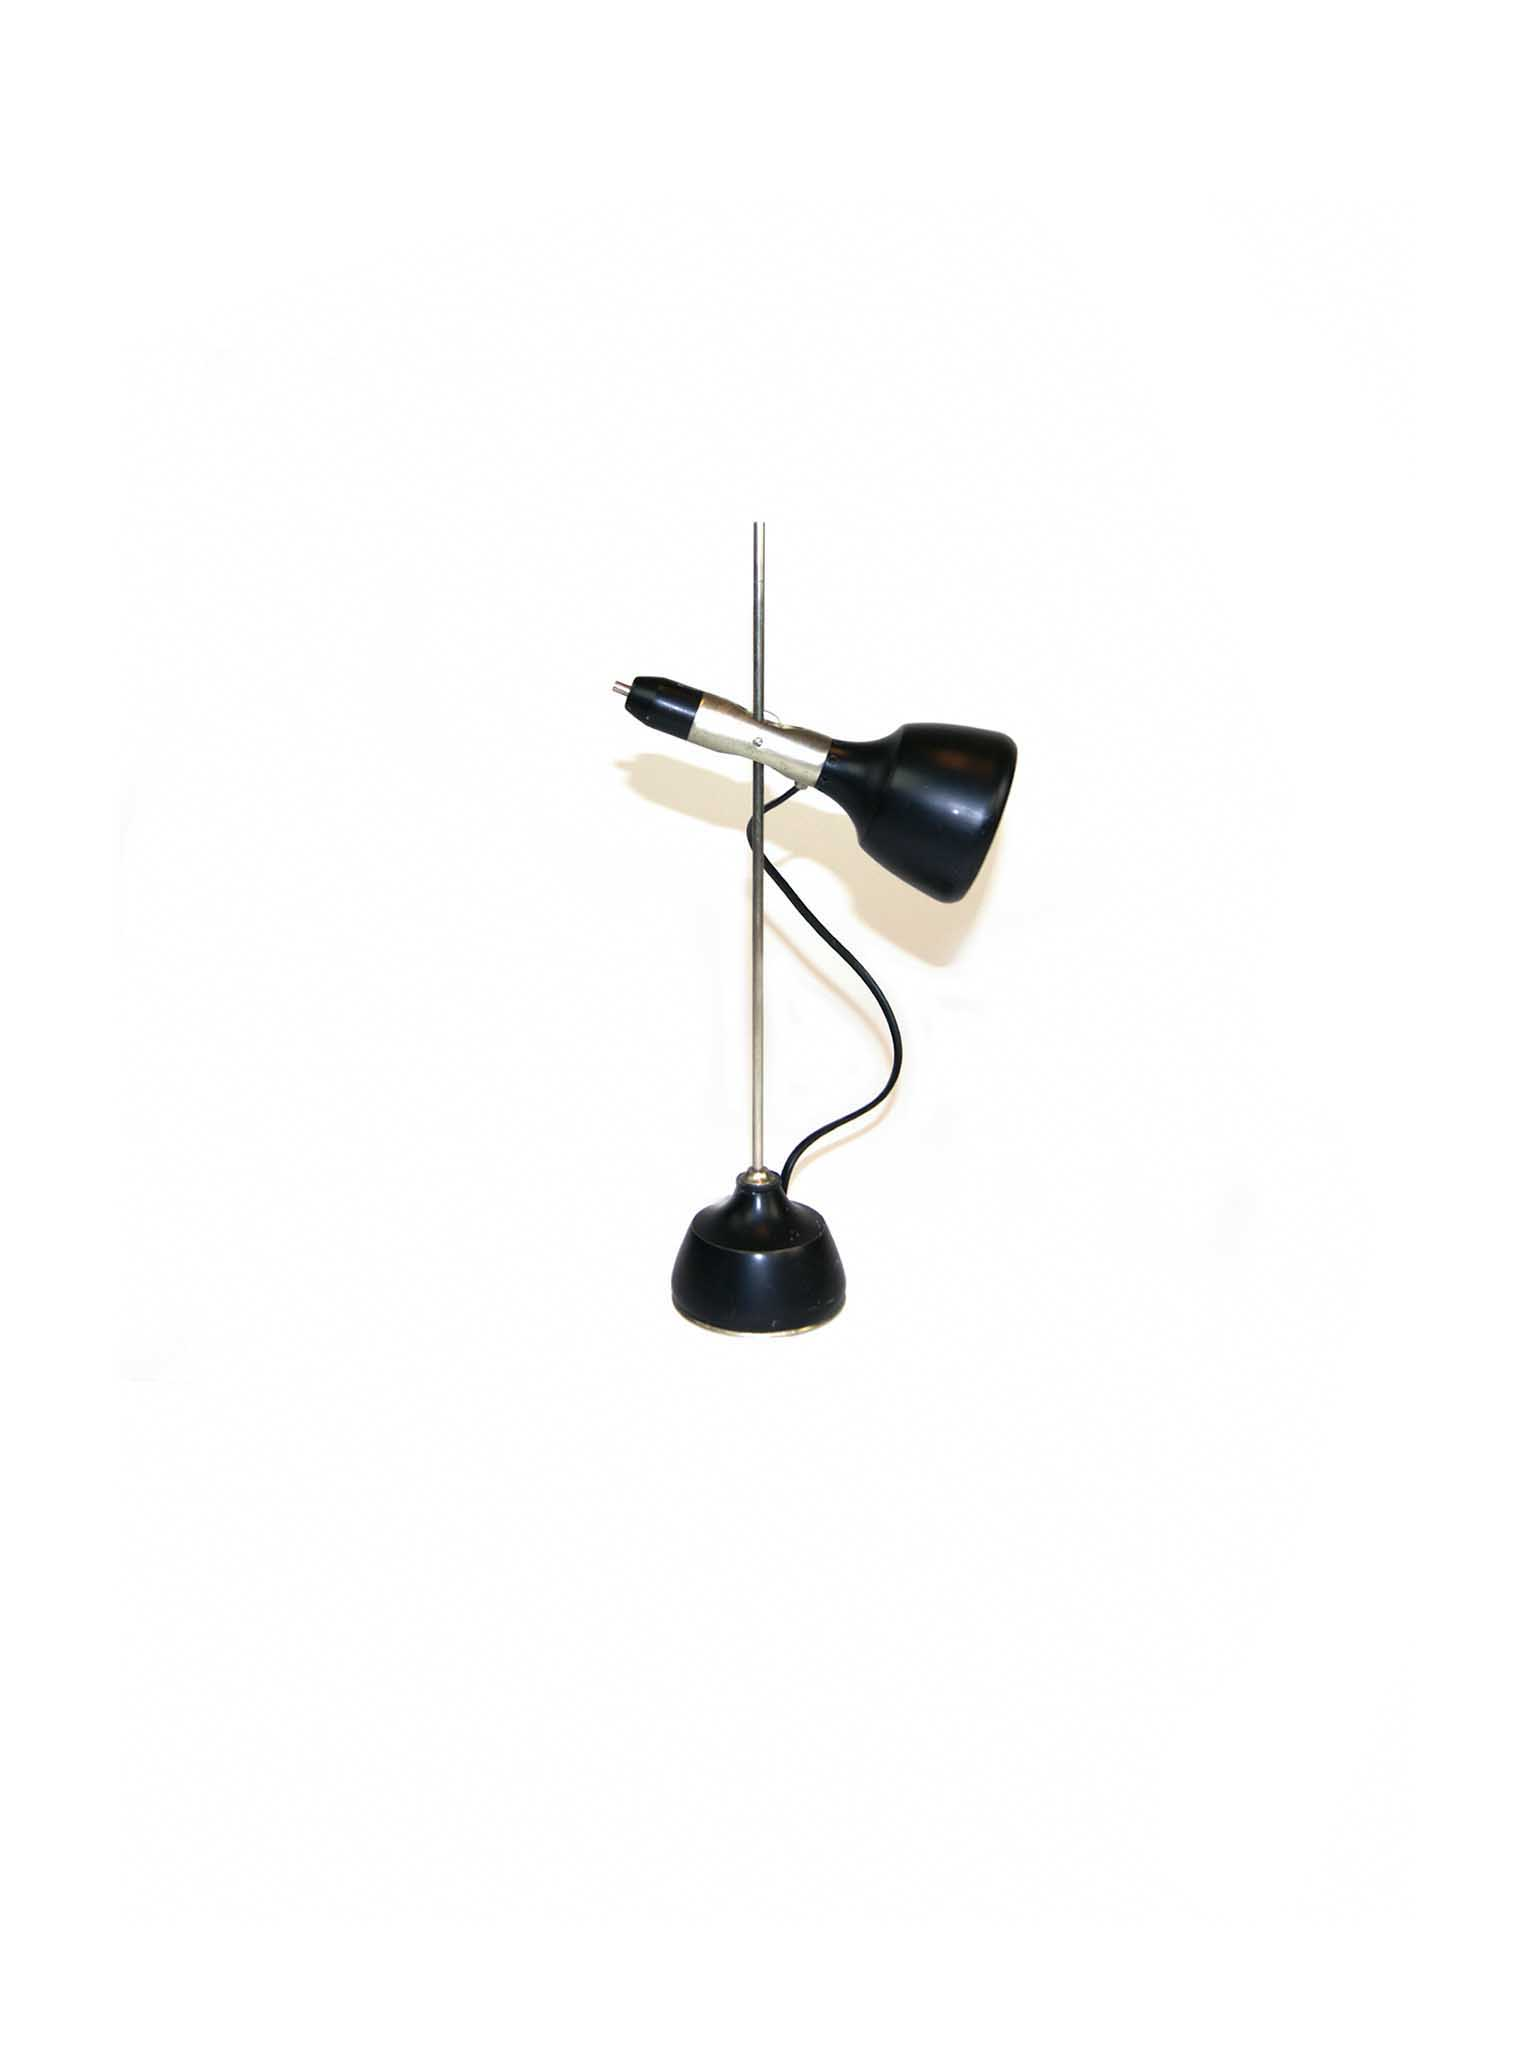 OSCAR TORLASCO TABLE LAMP